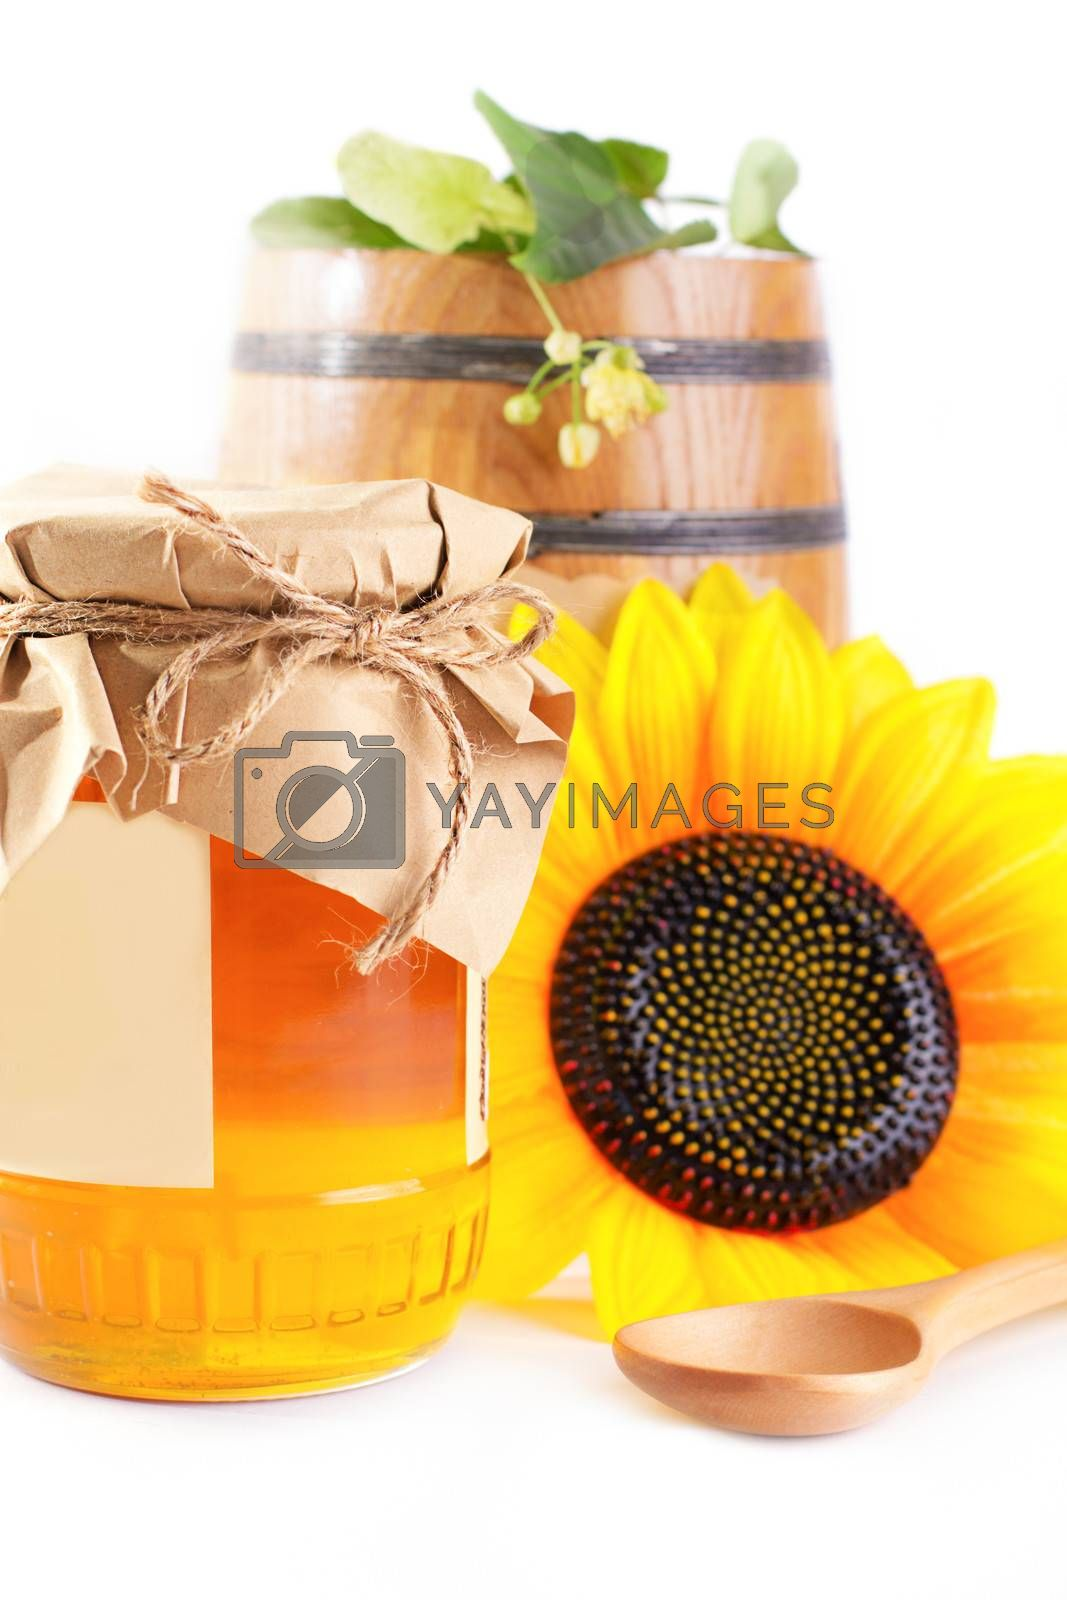 Royalty free image of Jar and barrel with honey and flowers by Angel_a